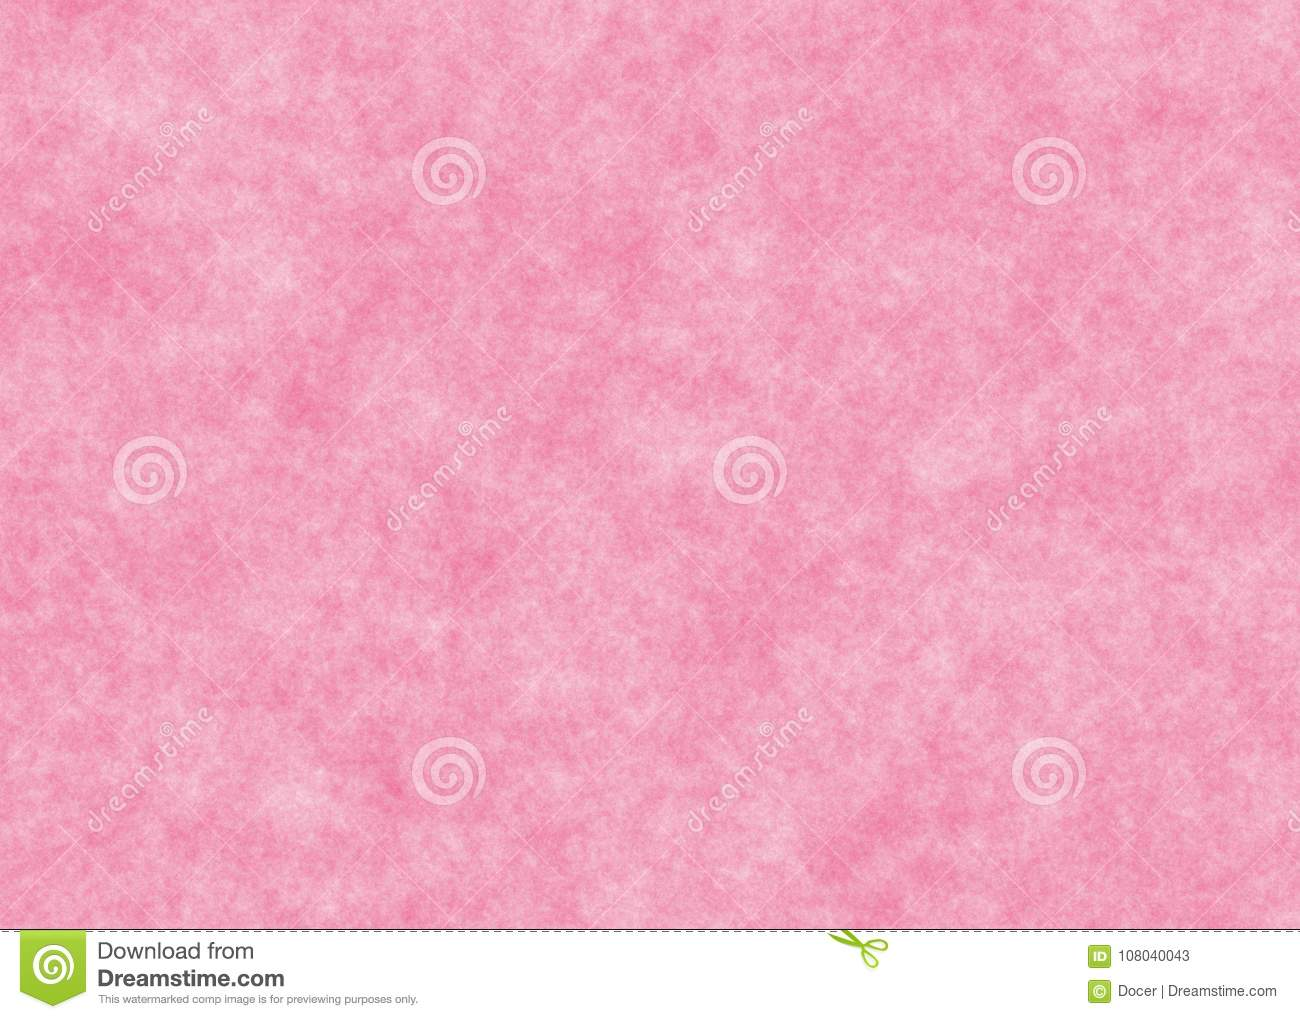 Pastel pink backgrounds